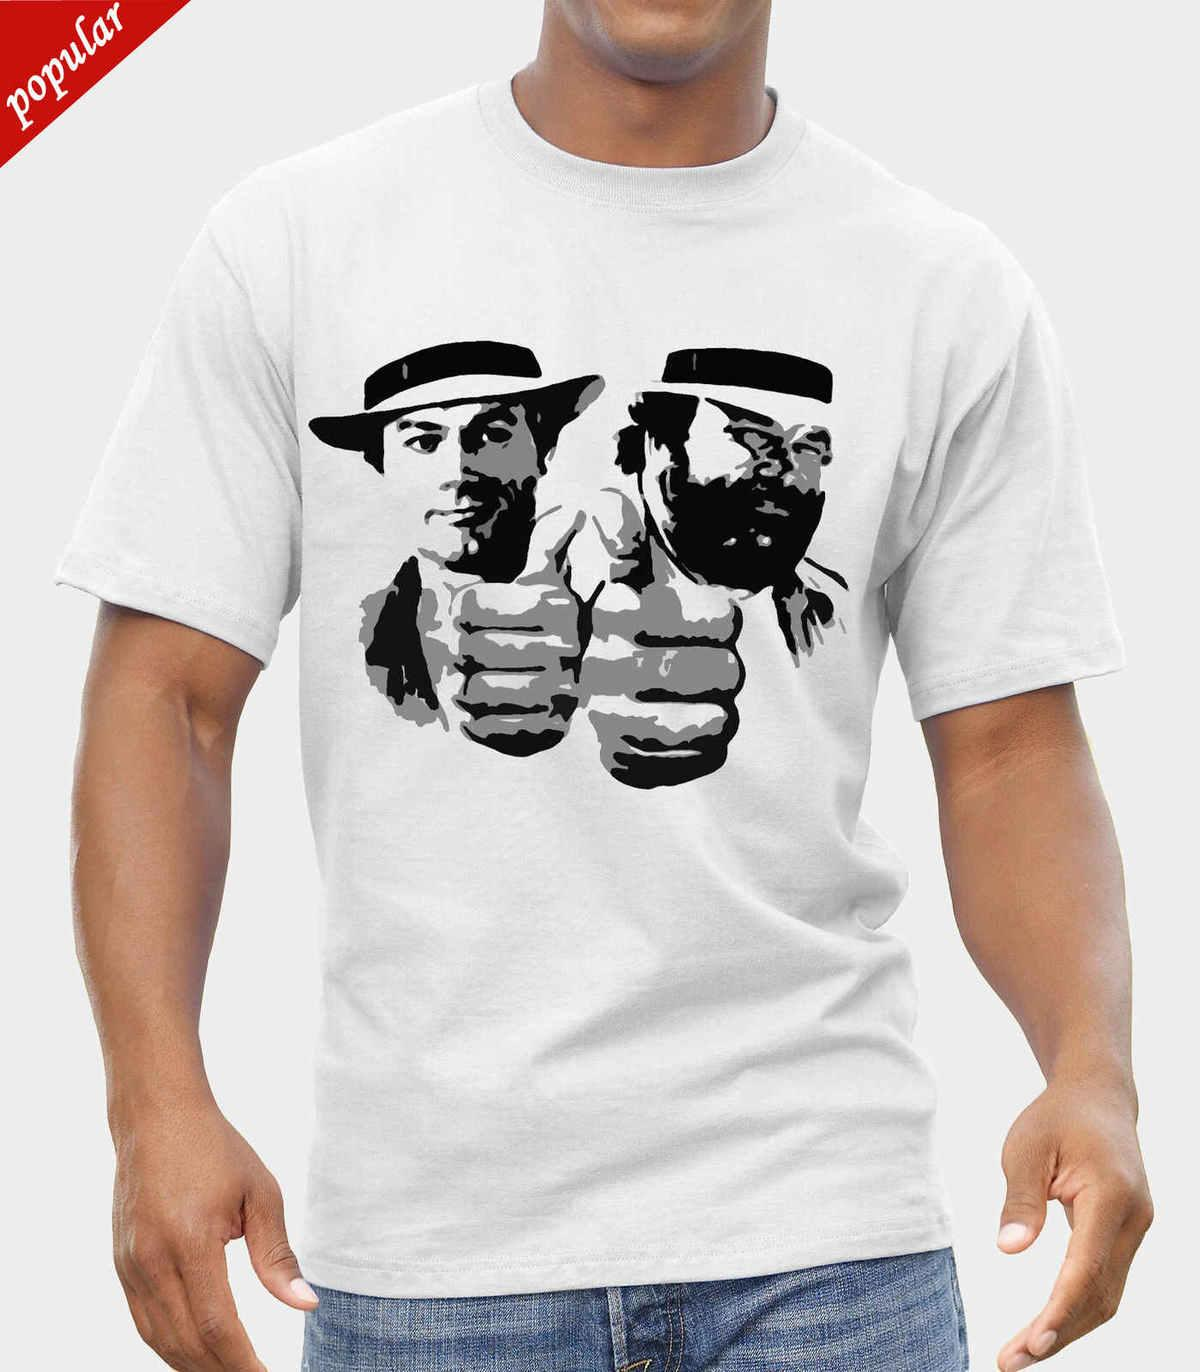 Bud spencer terence hill logo t shirt fruit of the loom print by epson random funny t shirts clever funny t shirts from customteemall 10 67 dhgate com